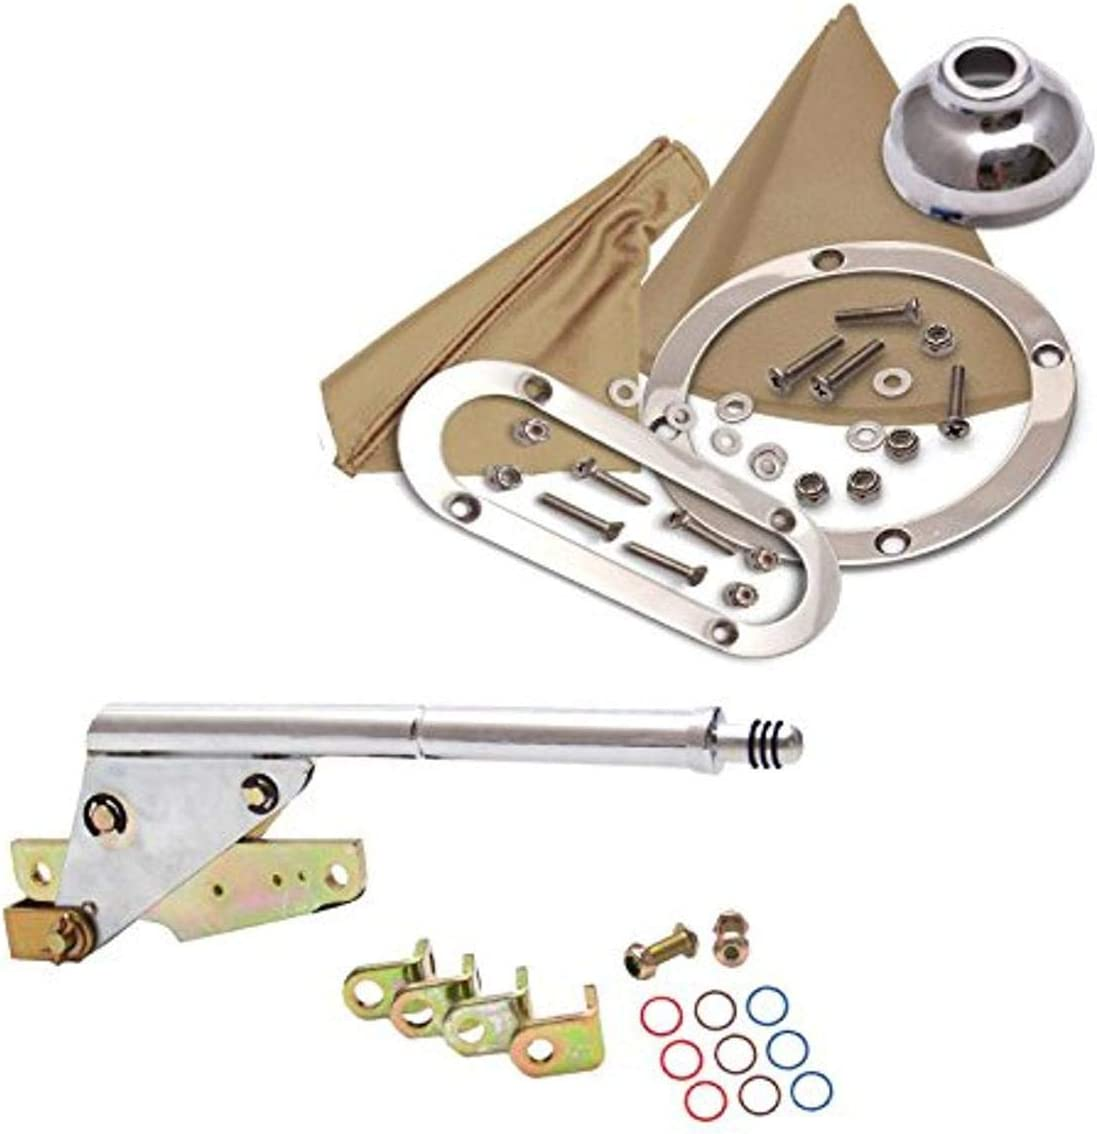 American Shifter 533942 Kit All stores are sold 2004R Cable Swan Brake 23 E Manufacturer regenerated product